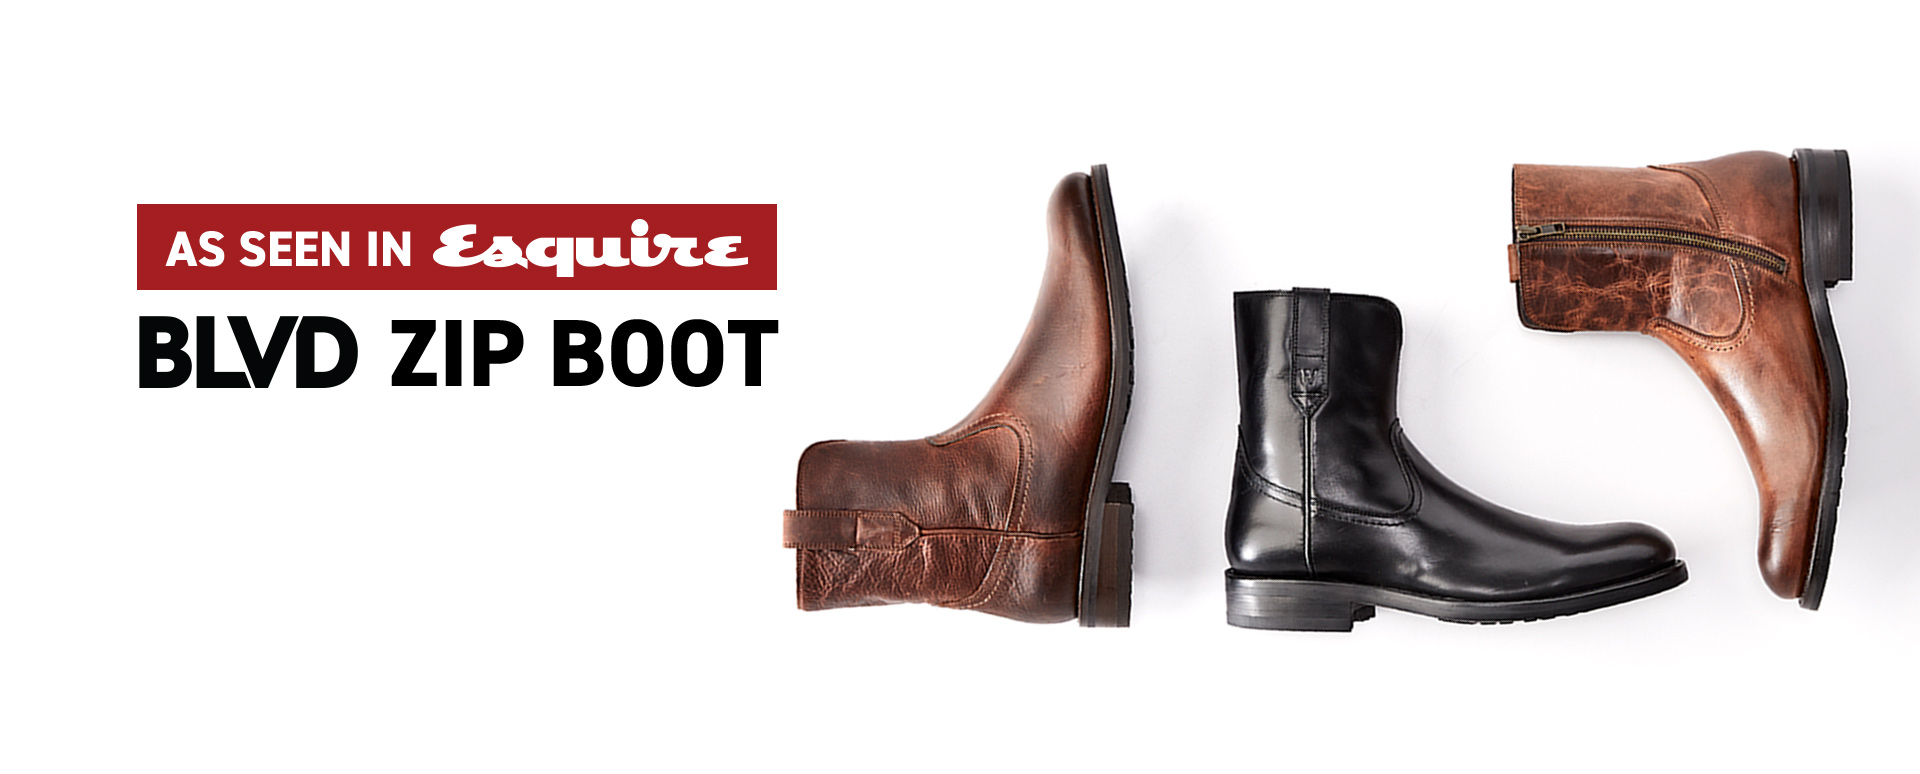 BLVD Zip Boot: As seen in Esquire magazine.